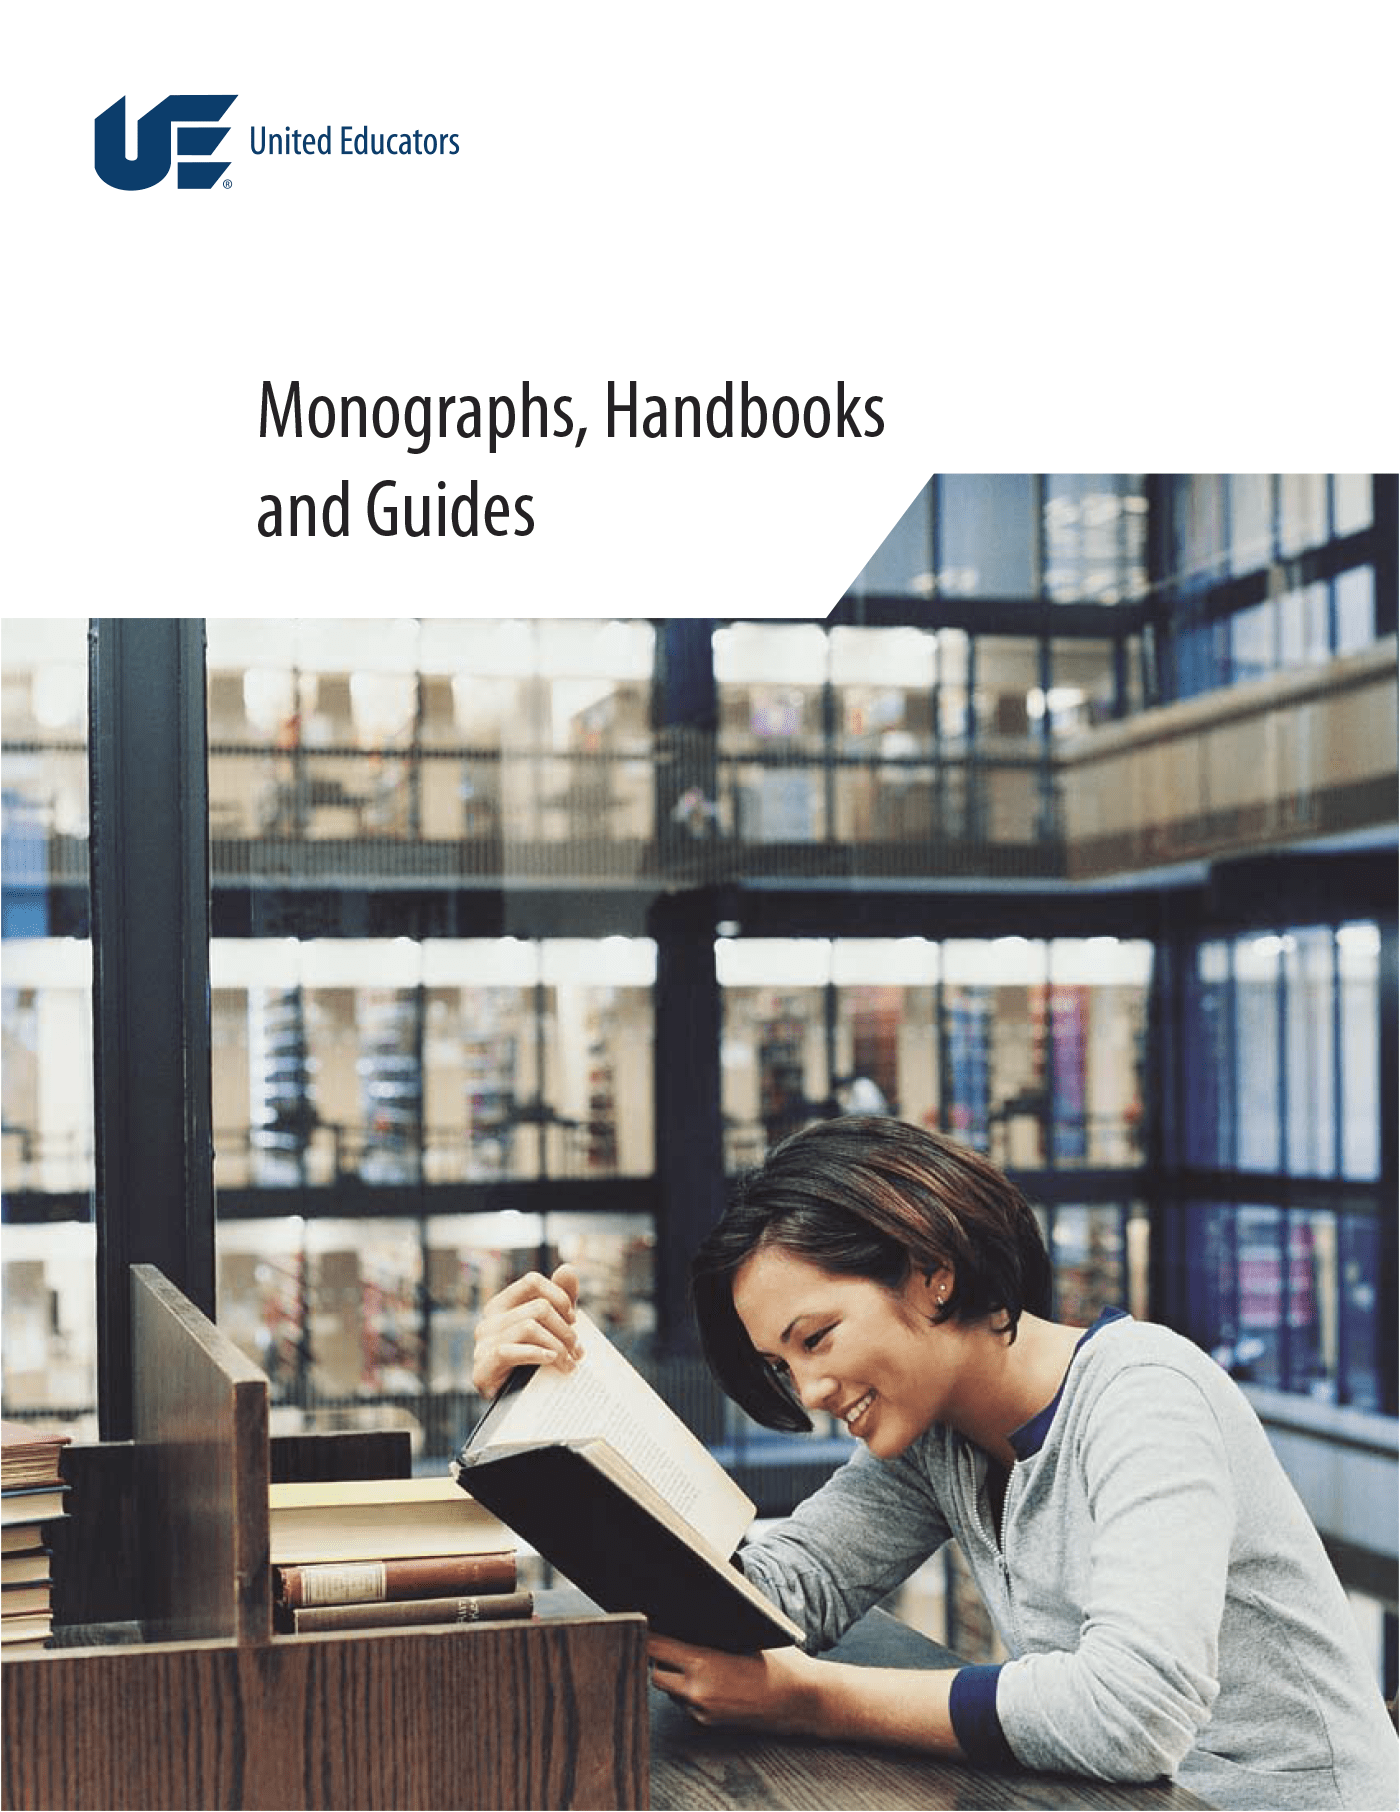 Monographs, Handbooks and Guides